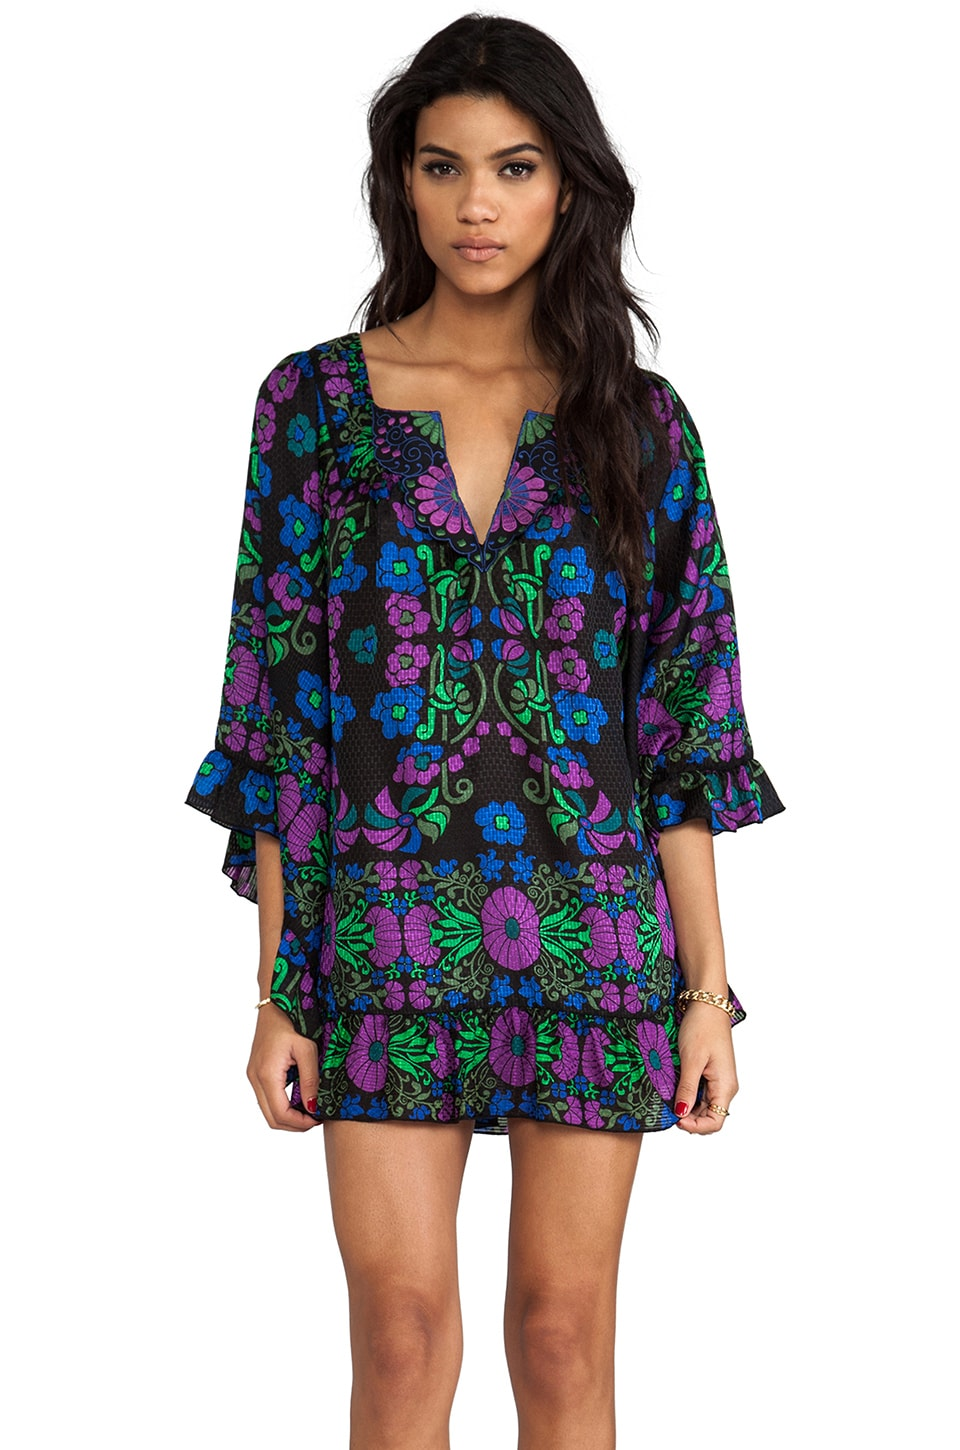 Anna Sui Morning Glory Mini Dress in Black